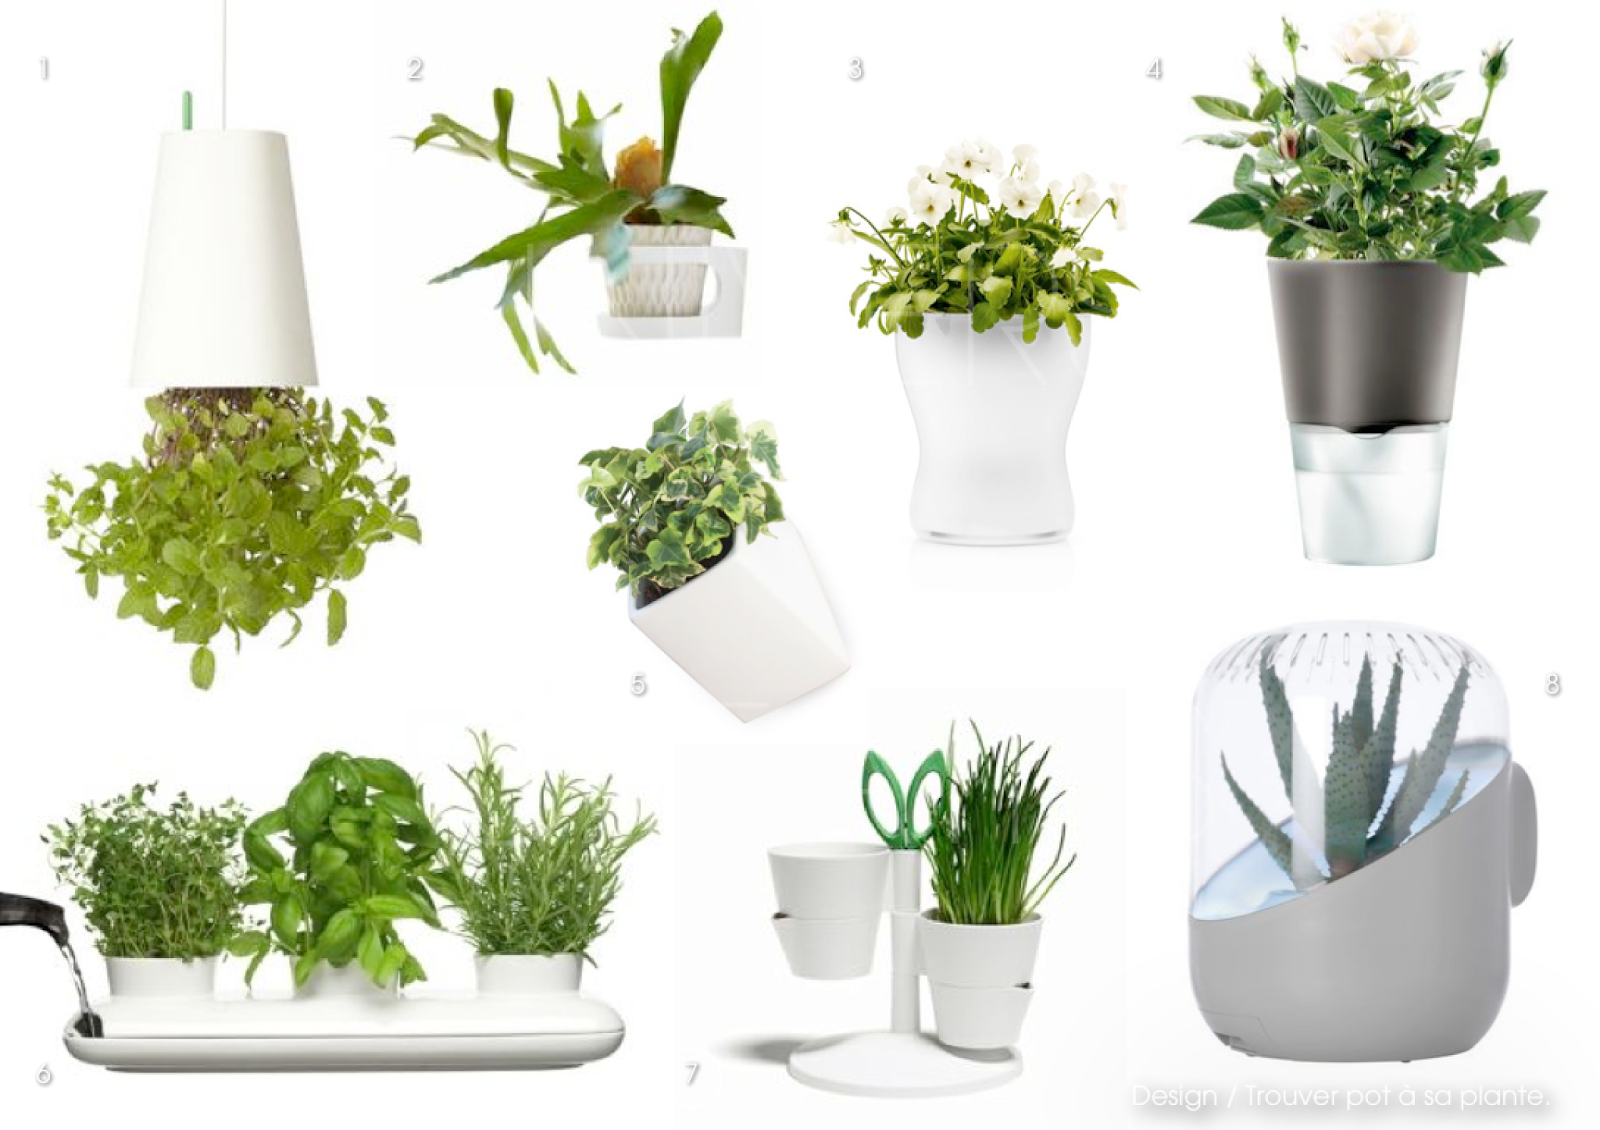 Univers creatifs mai 2014 for Plante interieur ikea